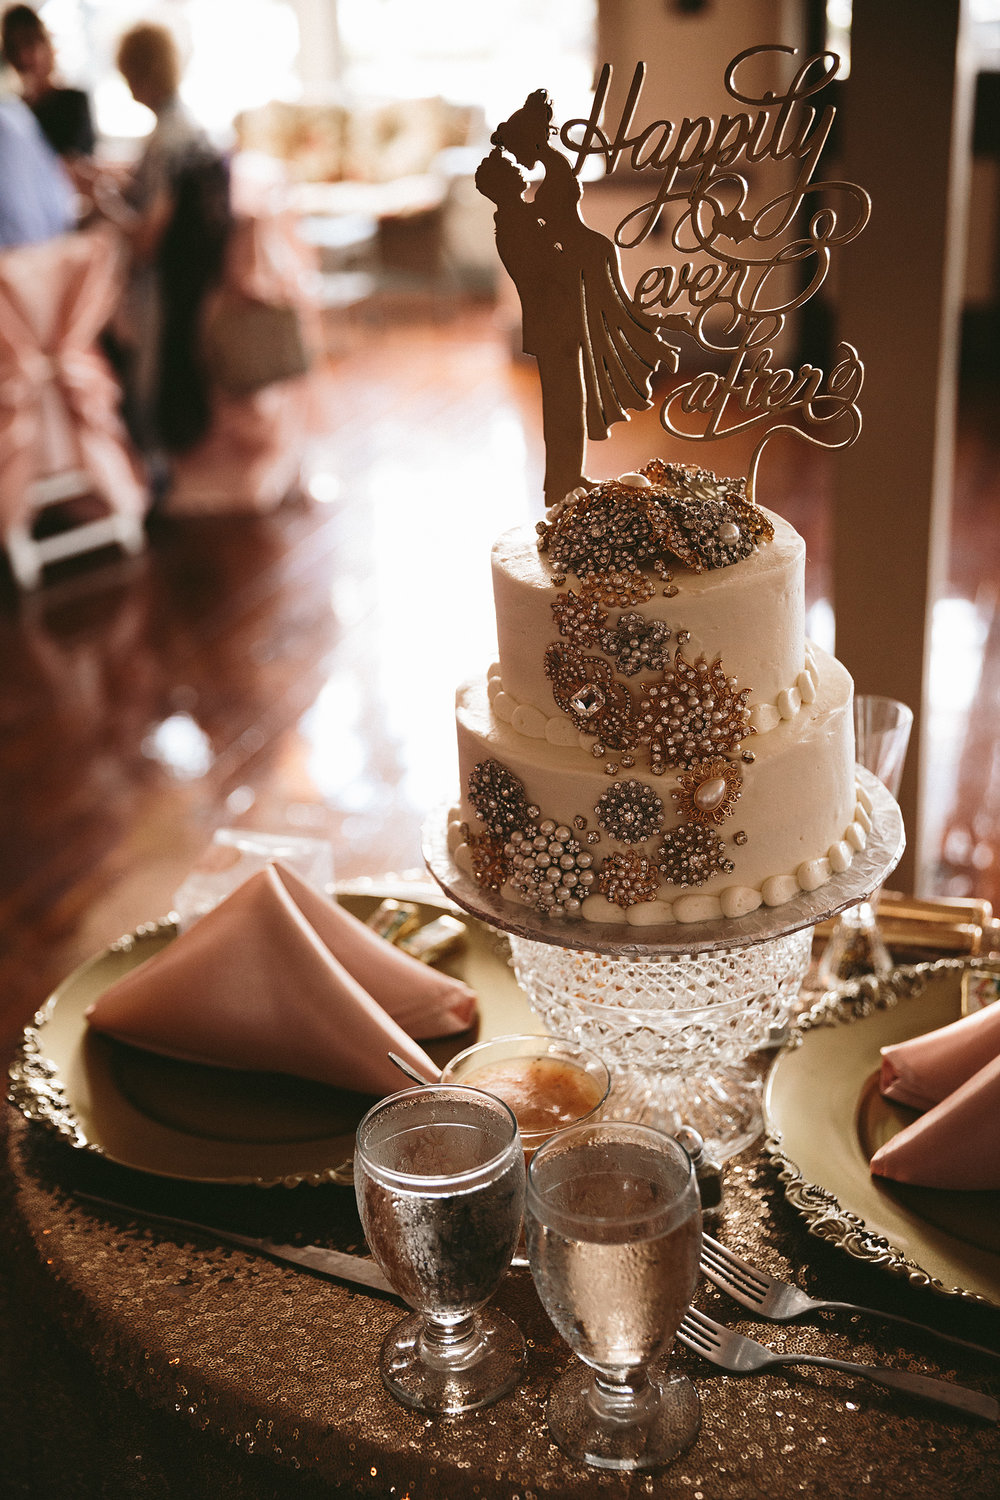 olmsted-falls-wedding-photographer-grand-pacific-junction_78.jpg